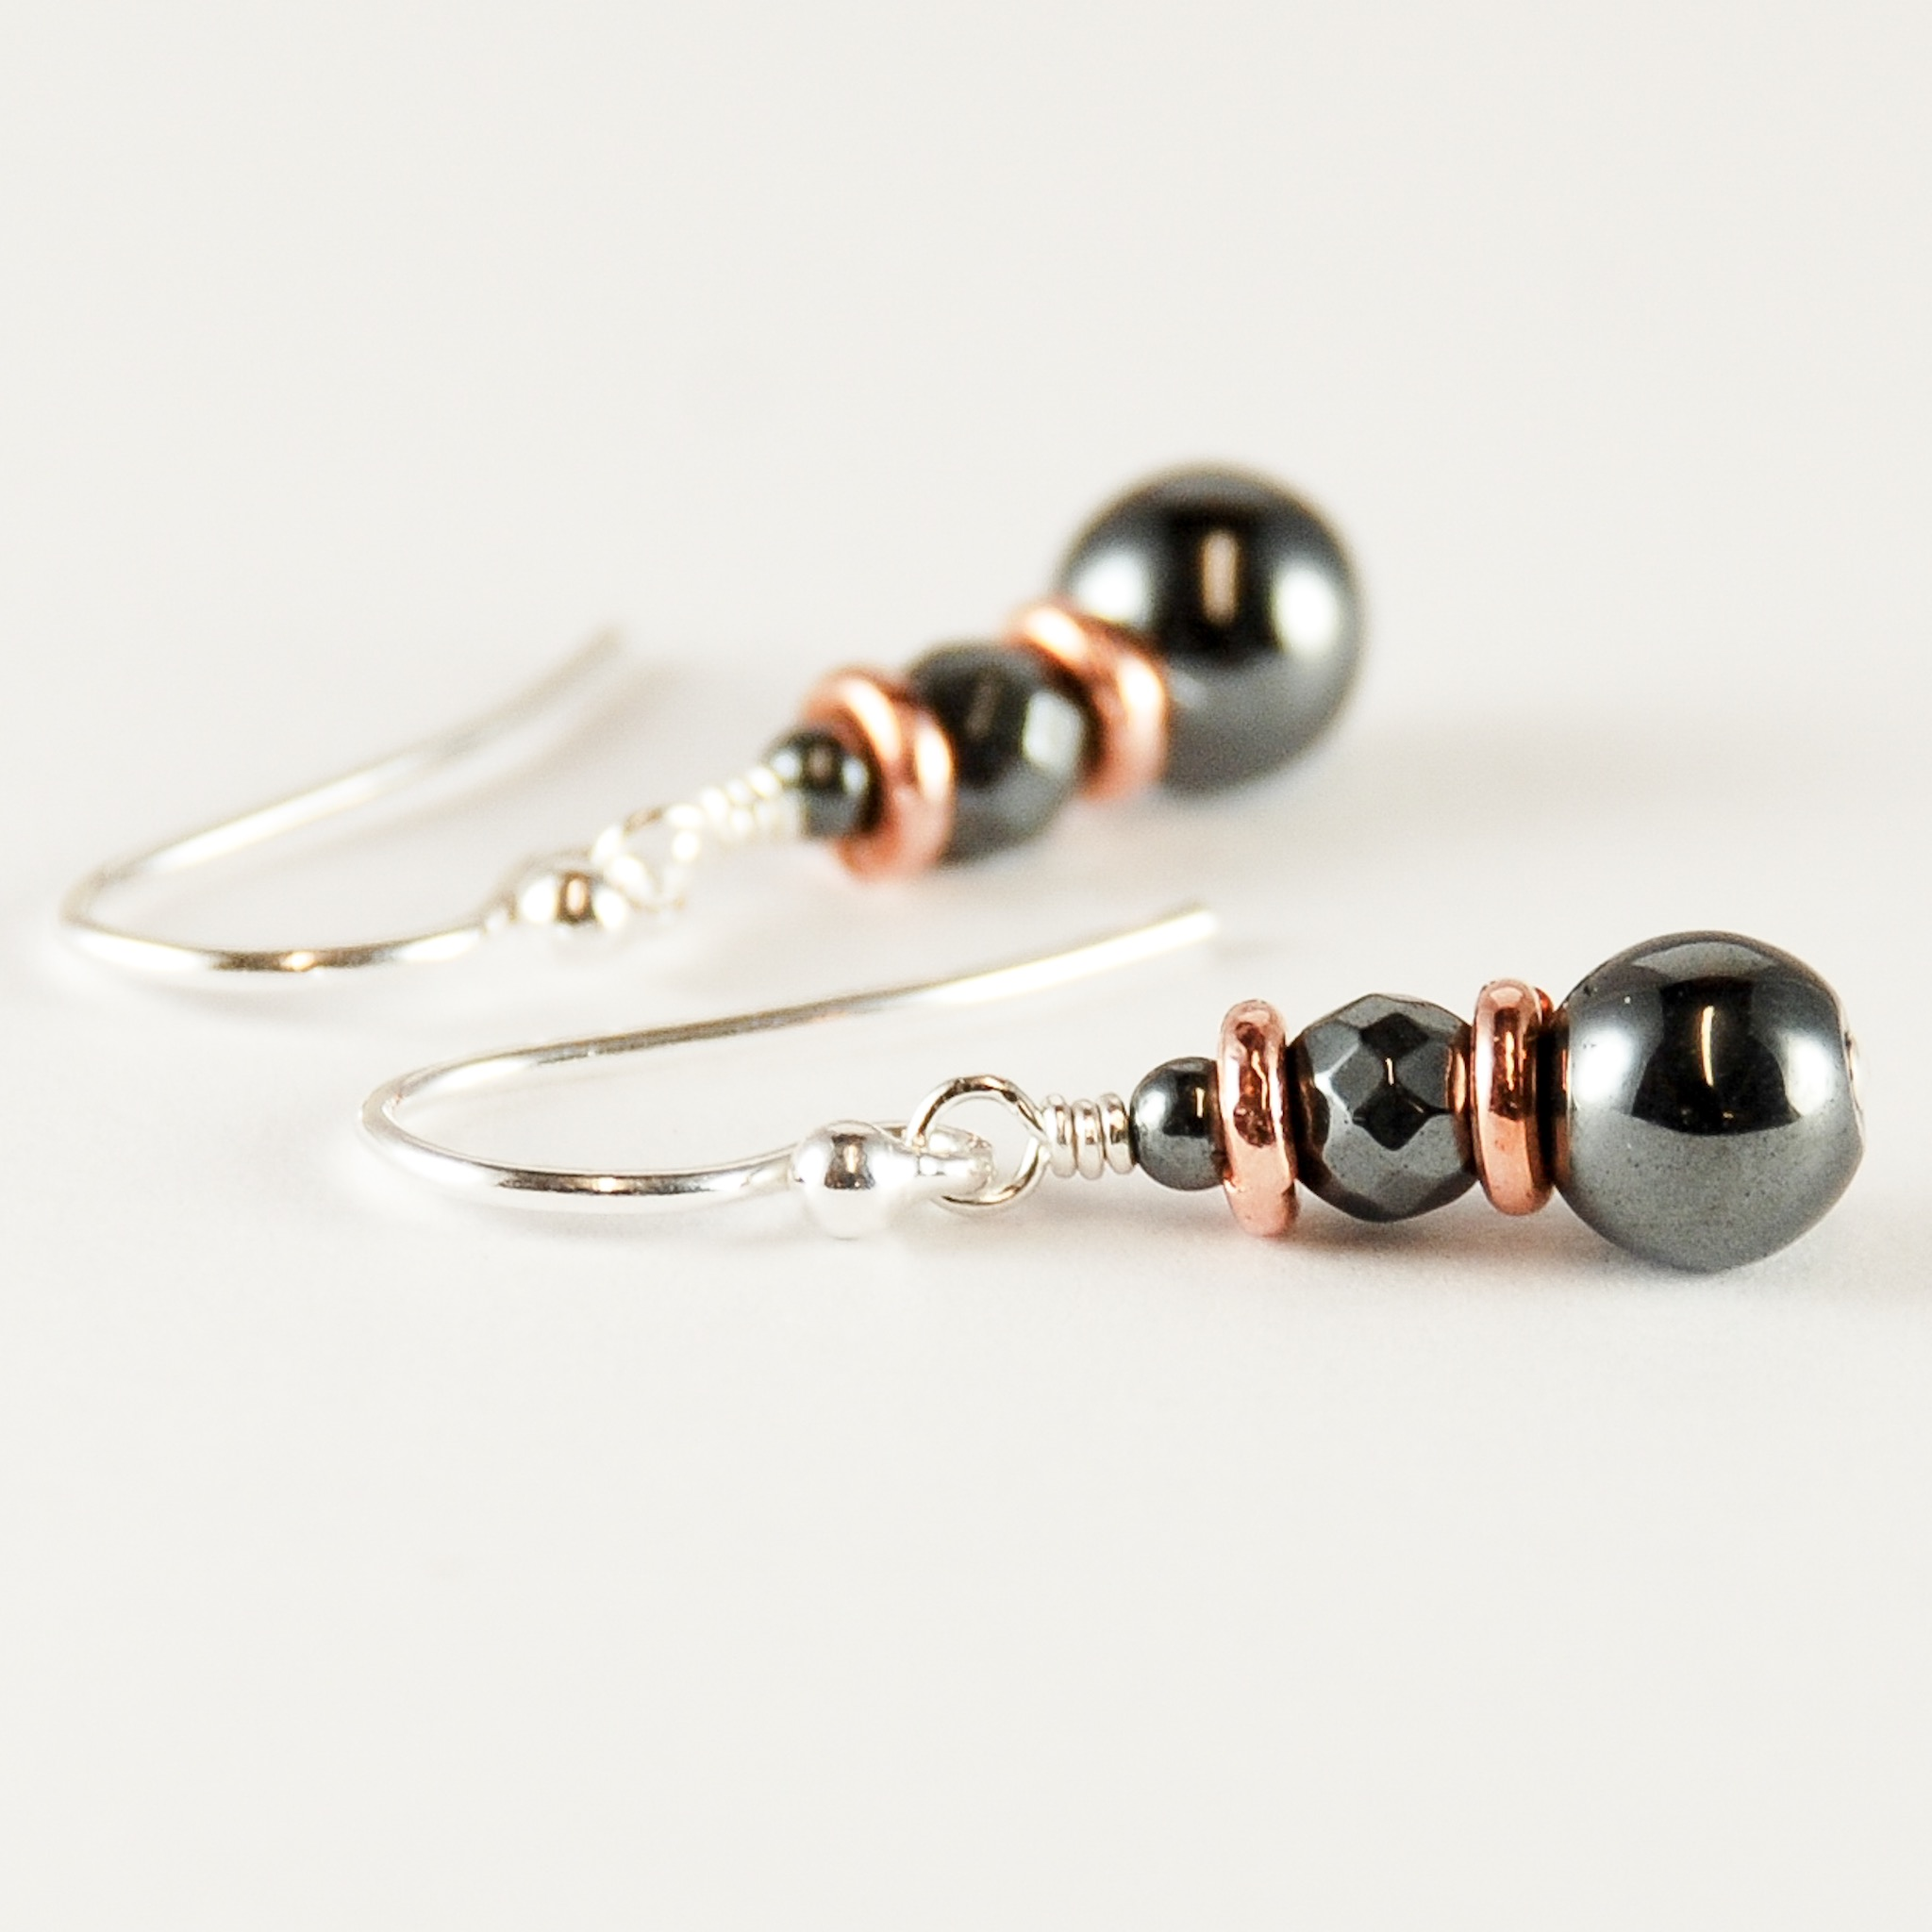 Copper jewelry hematite copper earrings 7th 11th anniversary gift ideas for her